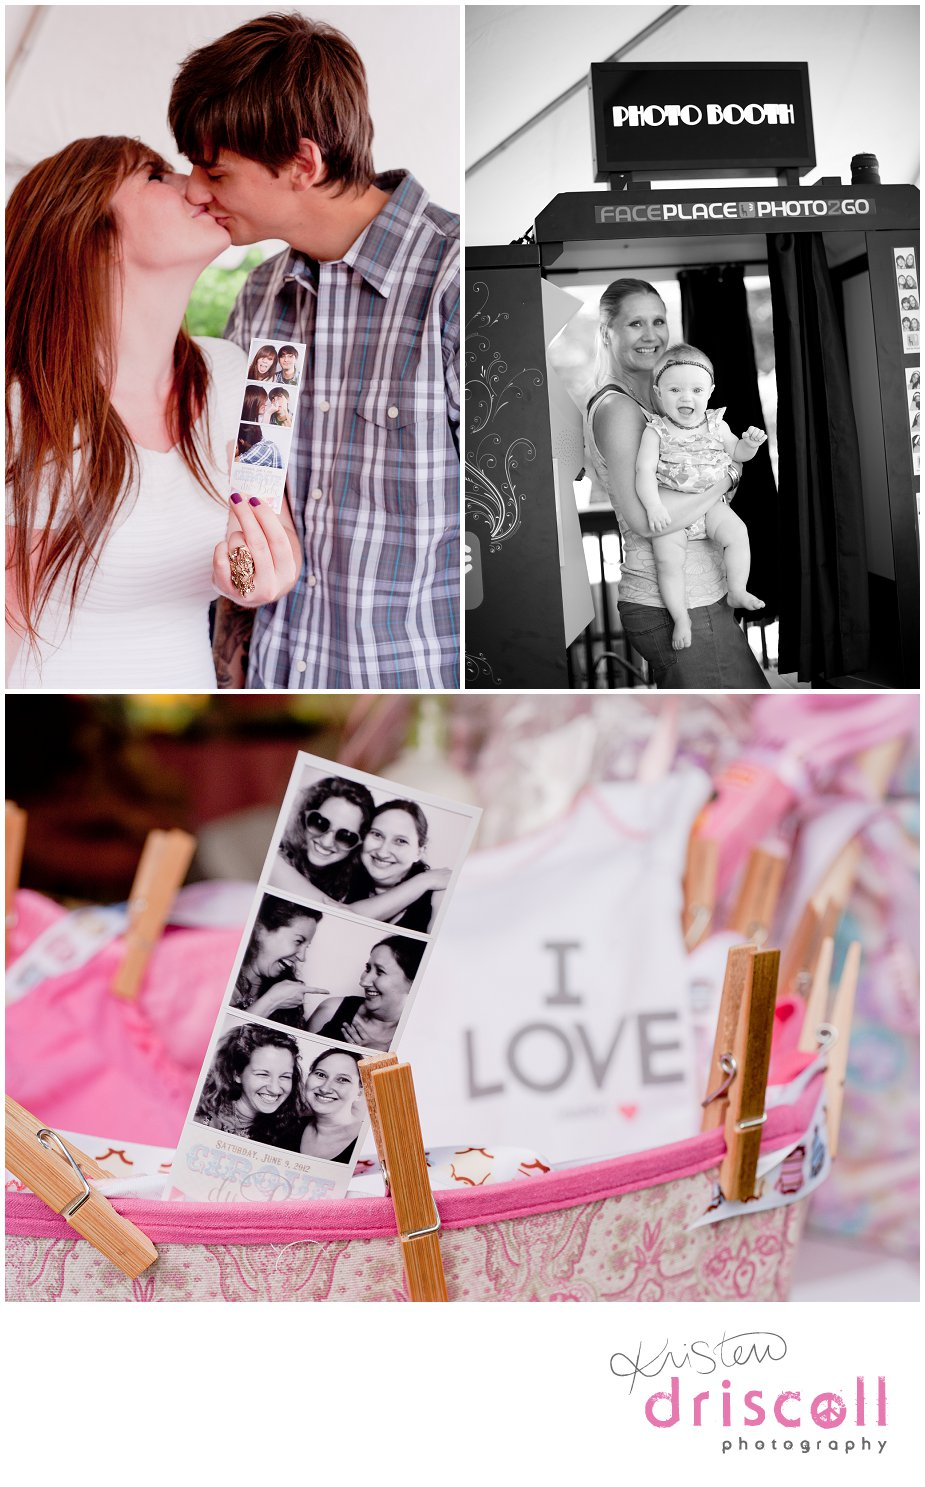 kristen-driscoll-photography-baby-shower-nj_2012_008